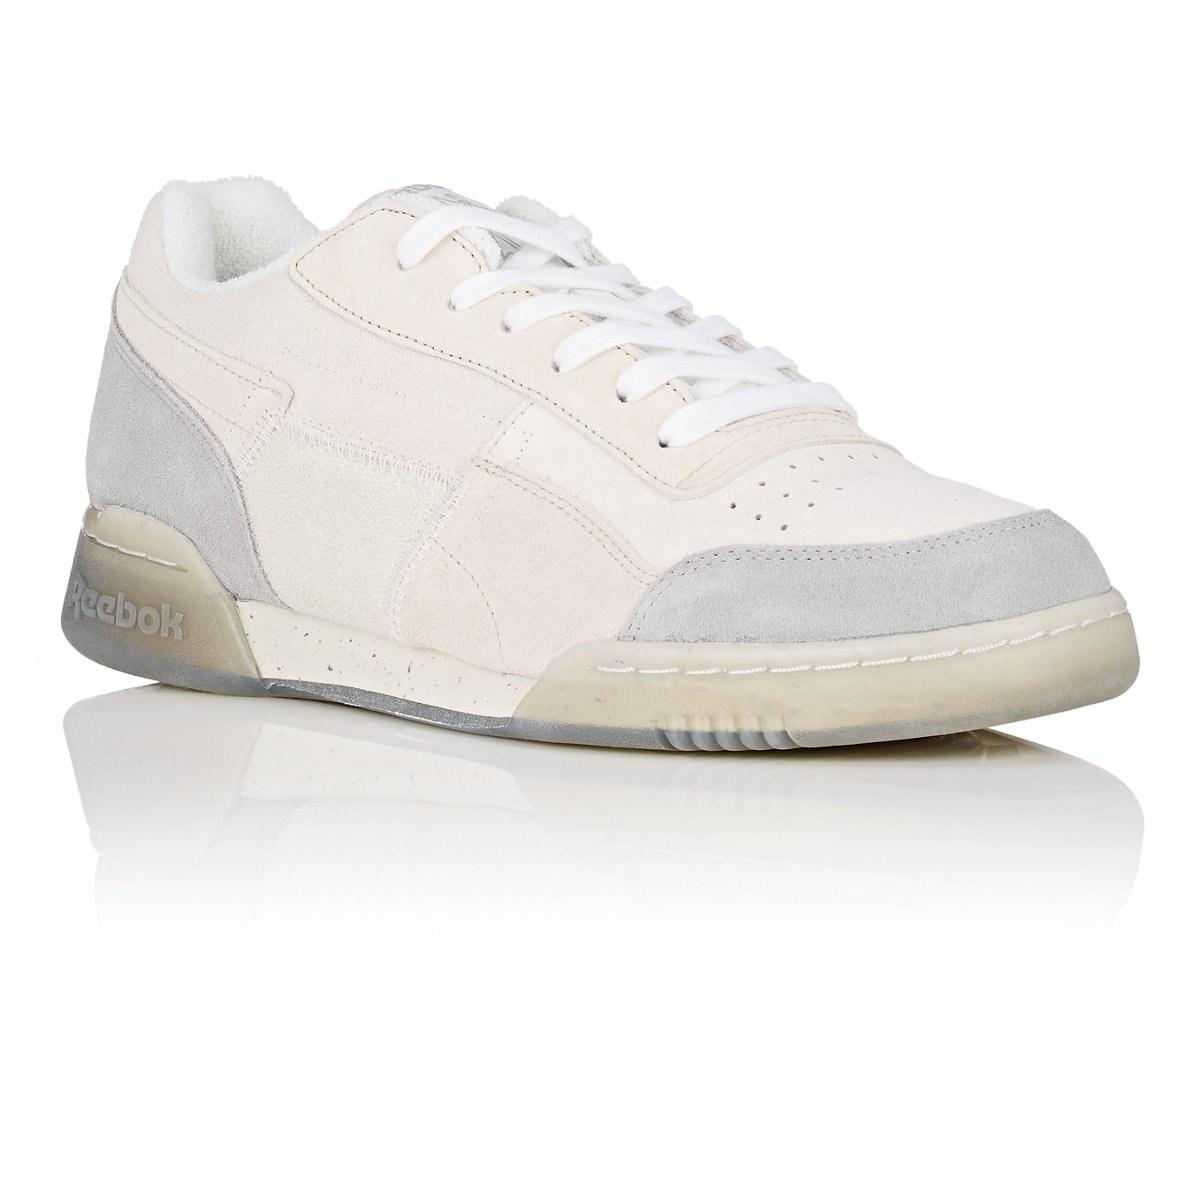 39182b28c0509 Reebok - White Workout Plus Tribute Sneakers for Men - Lyst. View fullscreen